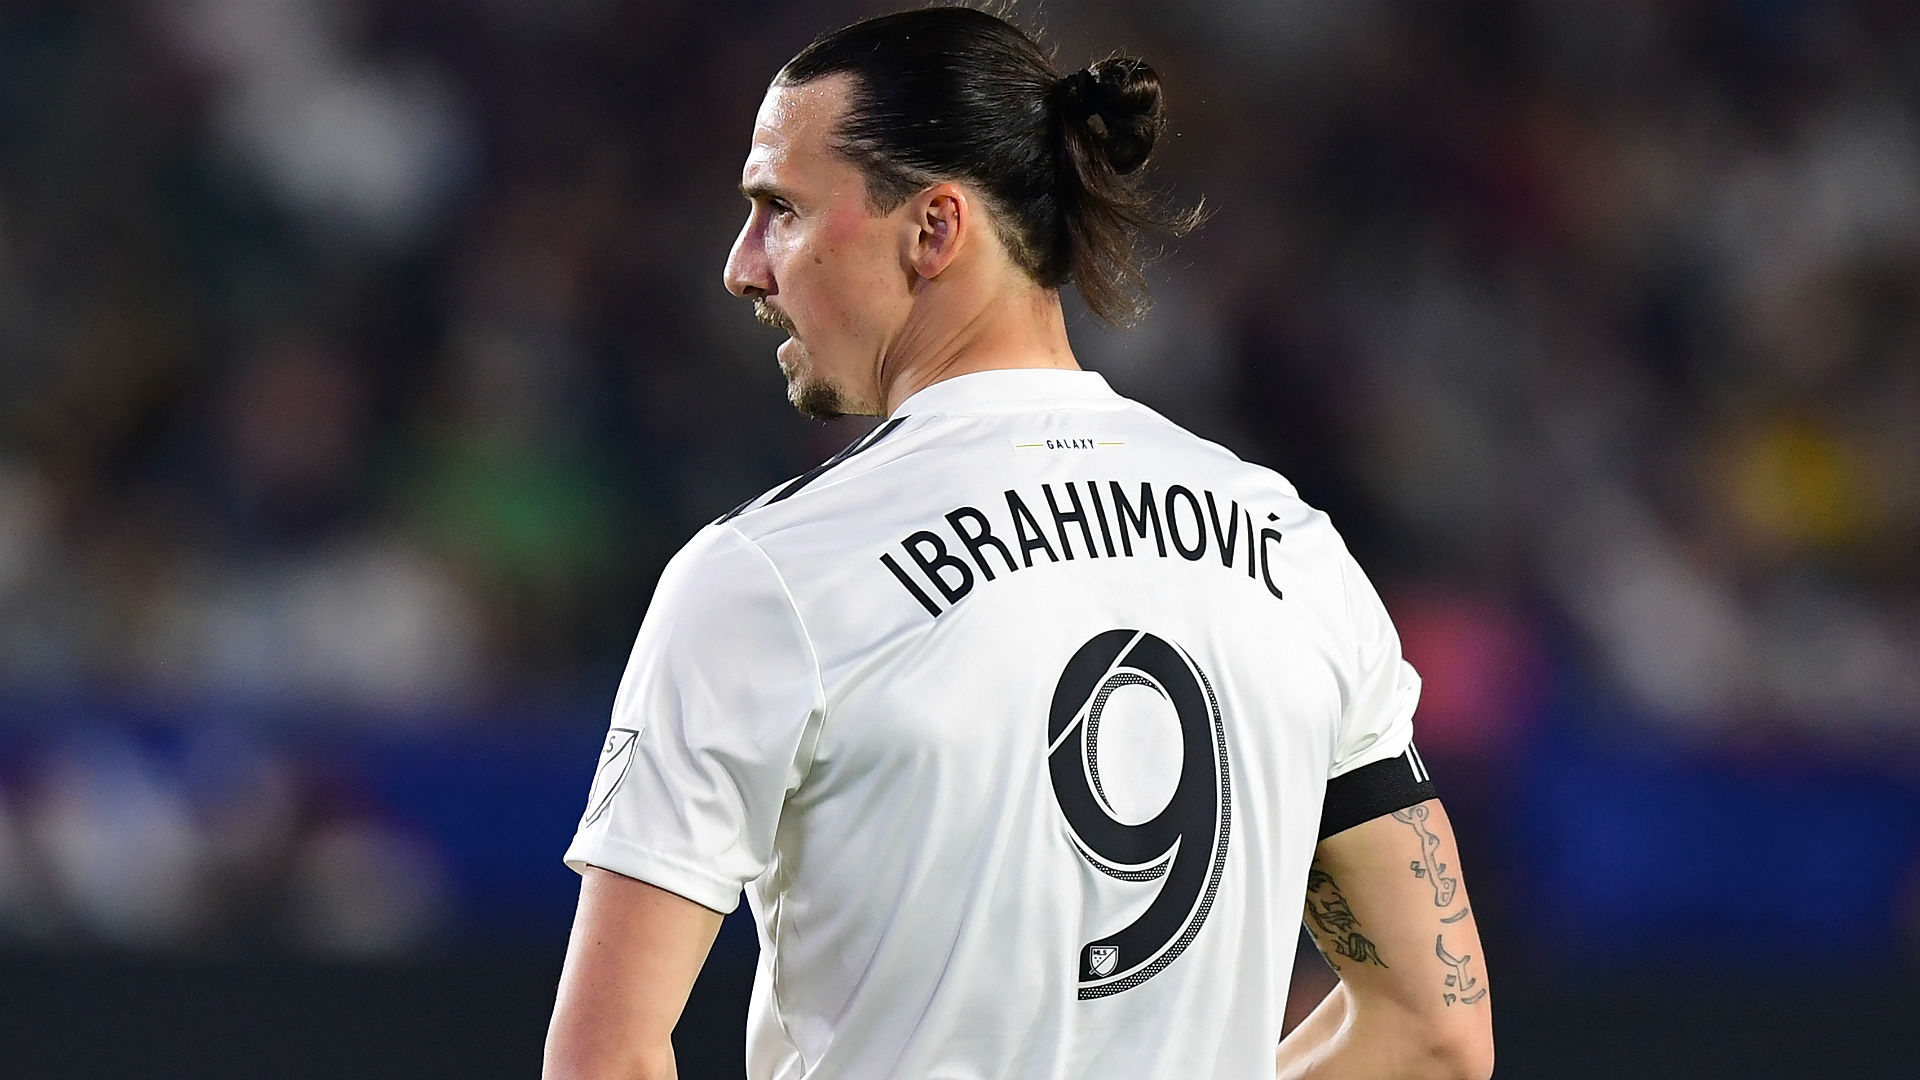 Ibrahimovic's incredible 500th goal